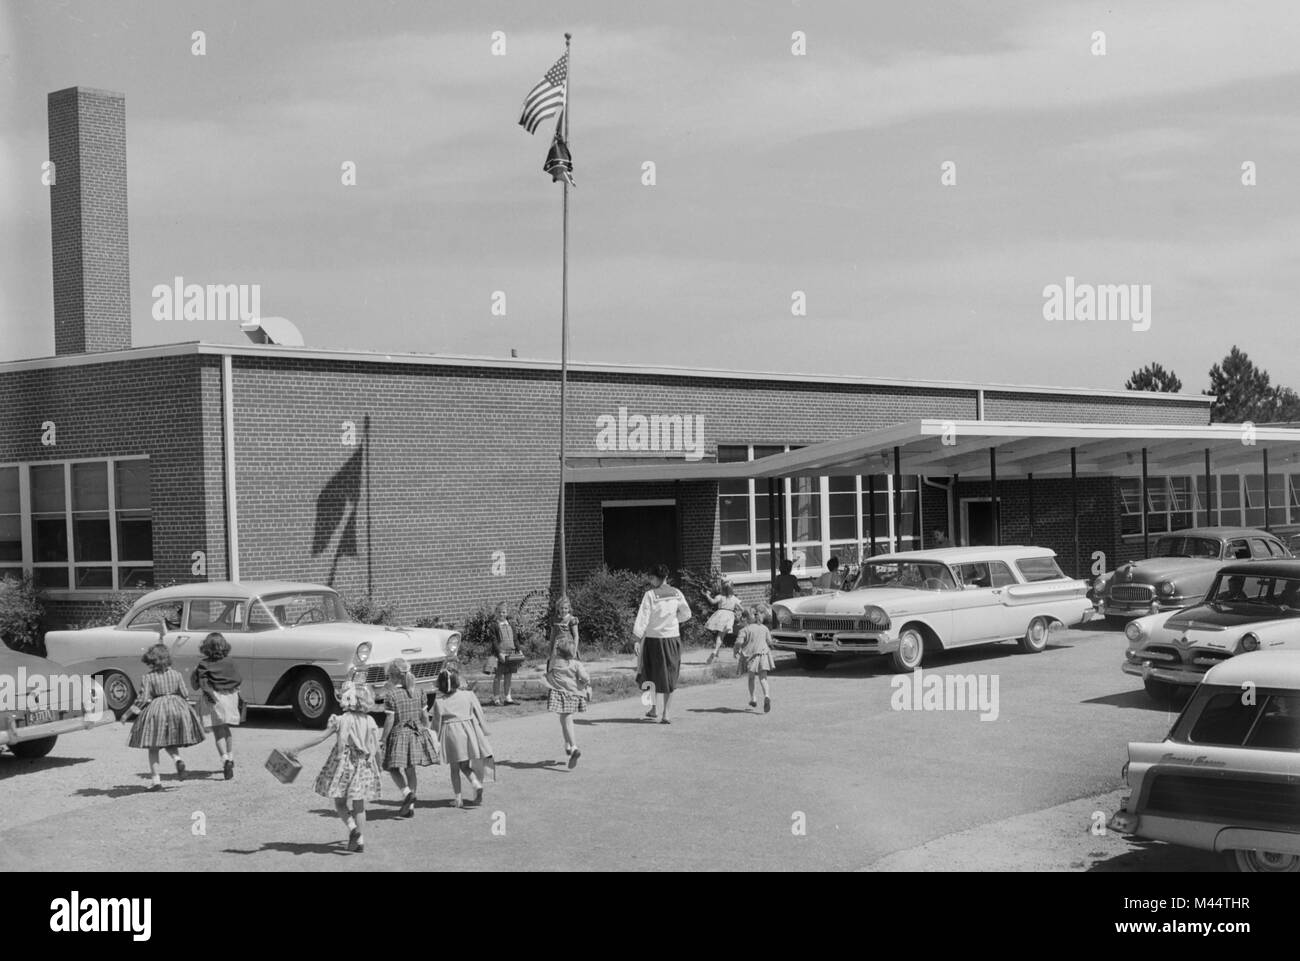 Elementary school in Georgia with US and Confederate flag flying, ca. 1959. File name: - Stock Image